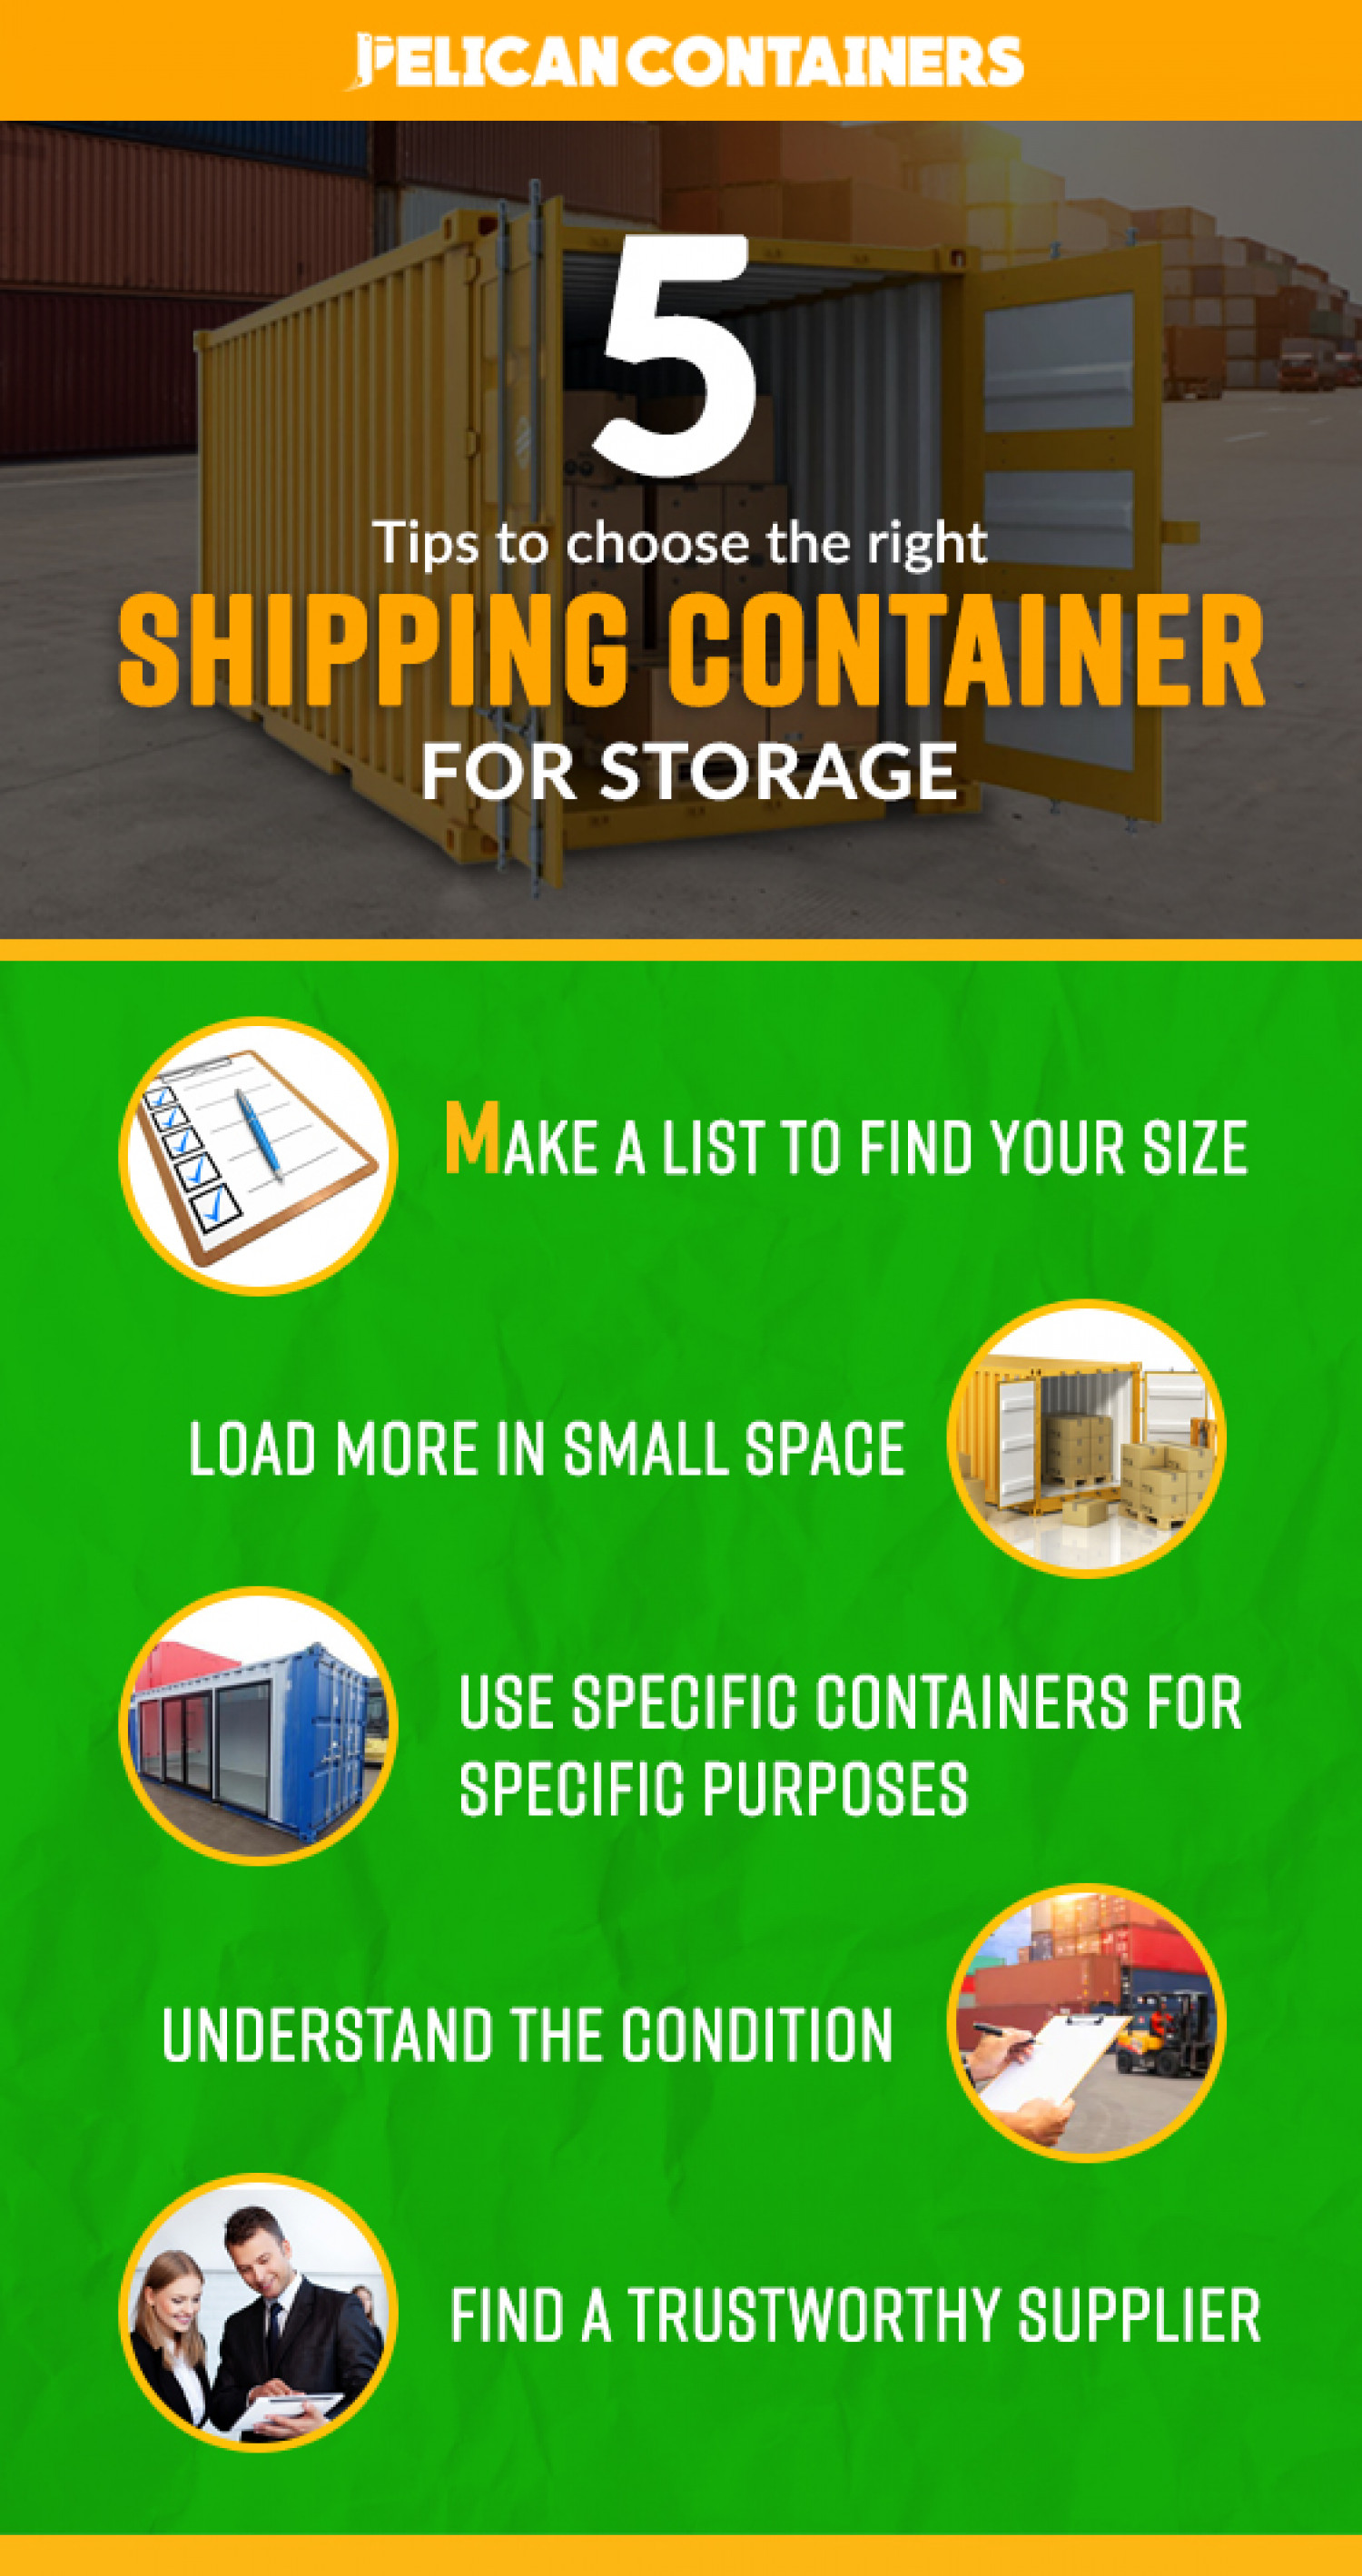 Best 5 Tips To Choose The Right Shipping Container for Storage Infographic